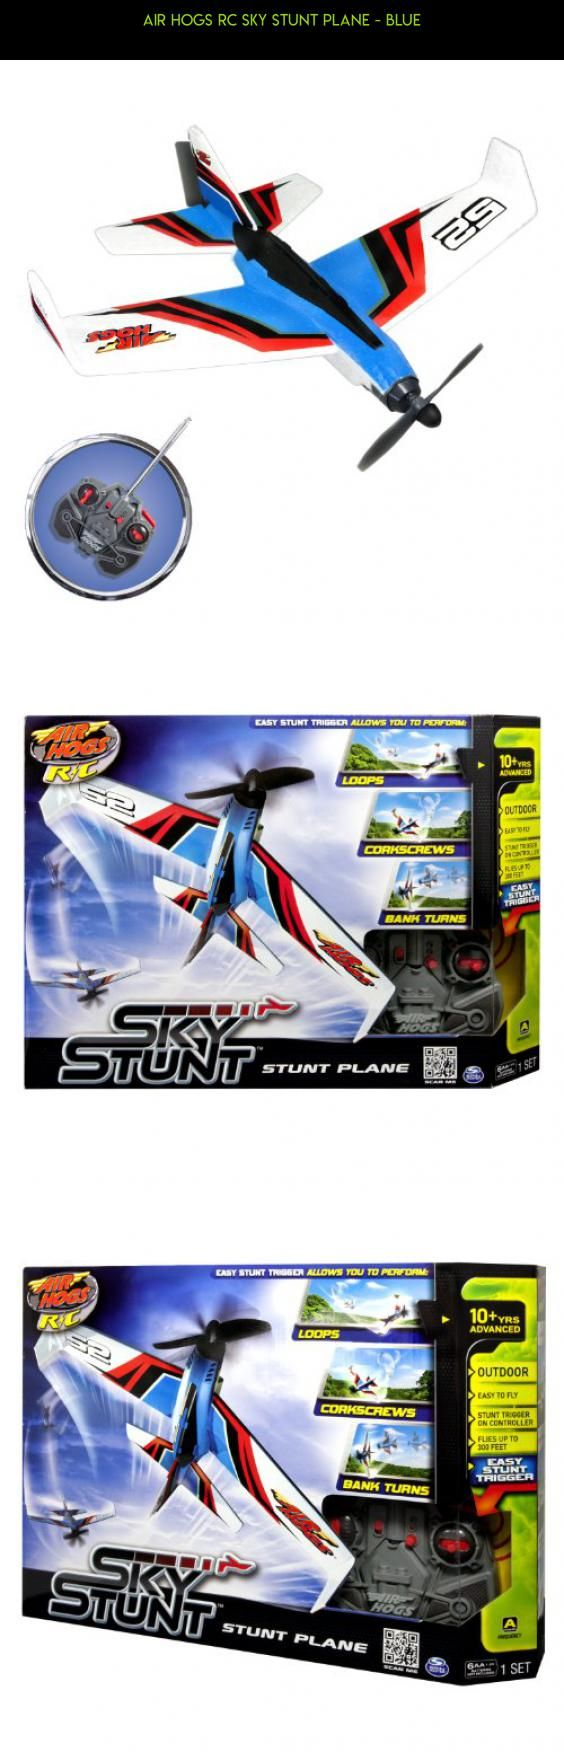 Air Hogs RC Sky Stunt Plane - Blue #parts #products #plans #kit #shopping #airplane #racing #technology #air #drone #tech #hogs #fpv #gadgets #camera